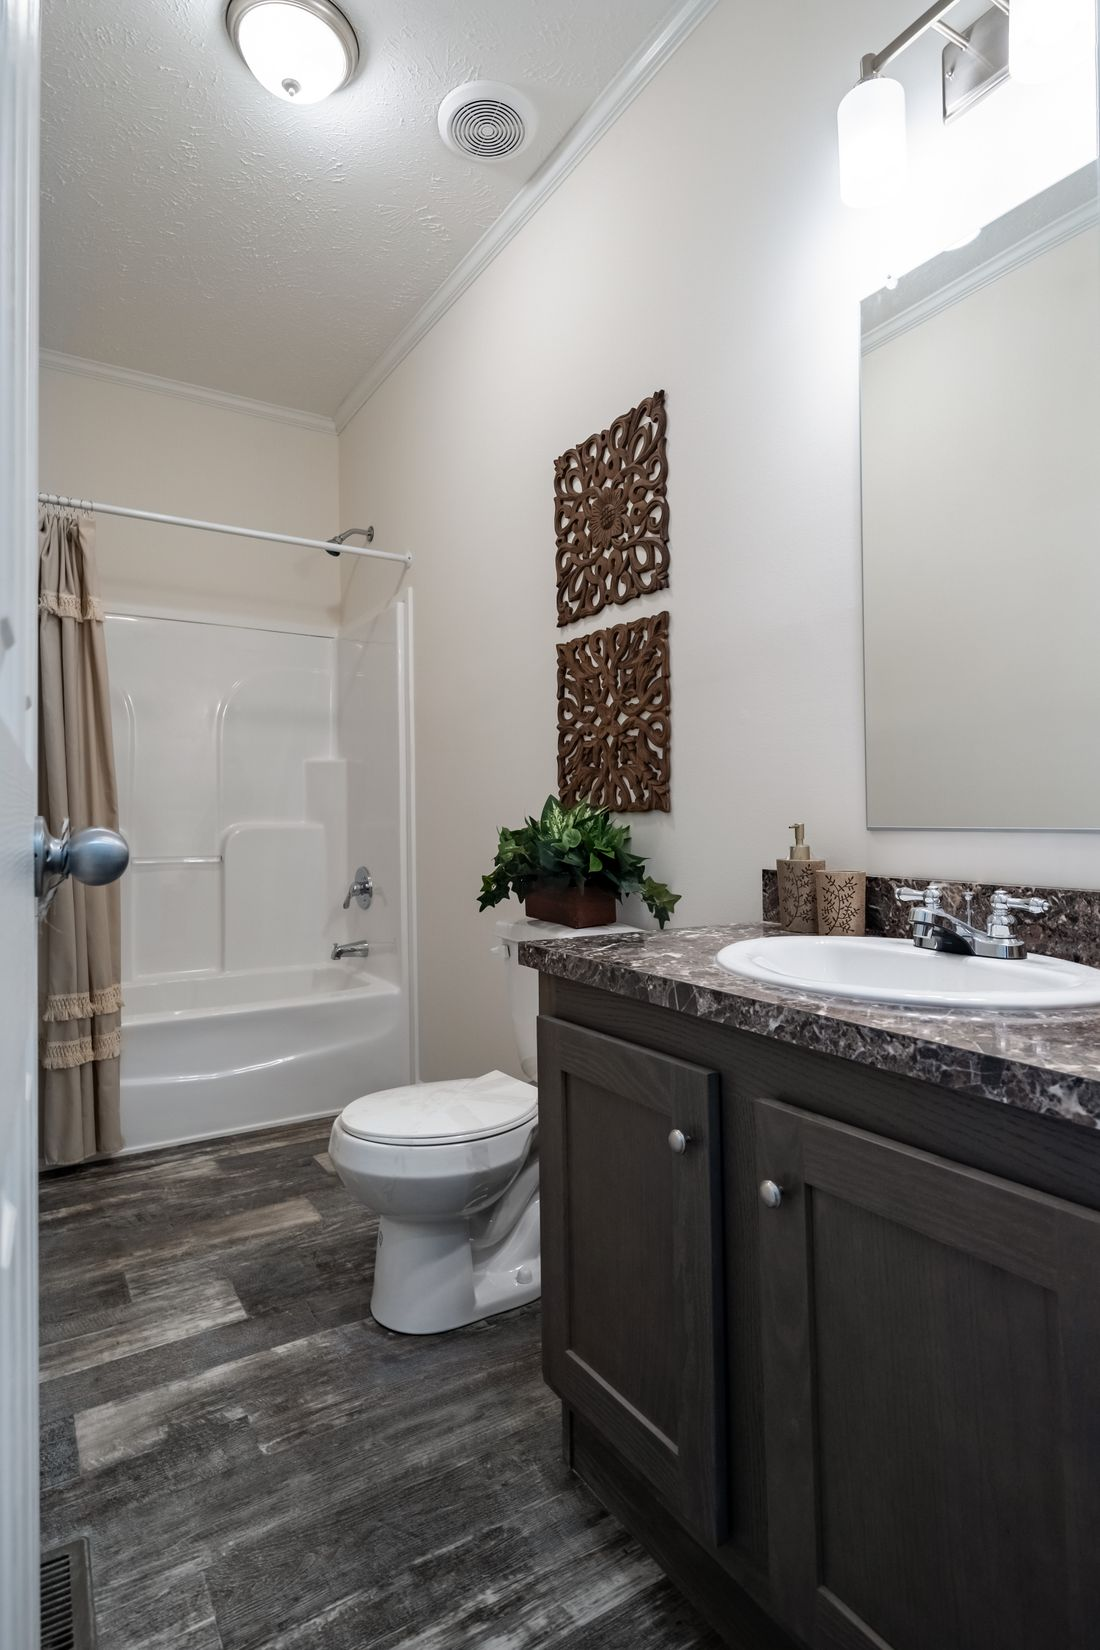 The 4058 ELITE PLUS 6216 Guest Bathroom. This Manufactured Mobile Home features 2 bedrooms and 2 baths.